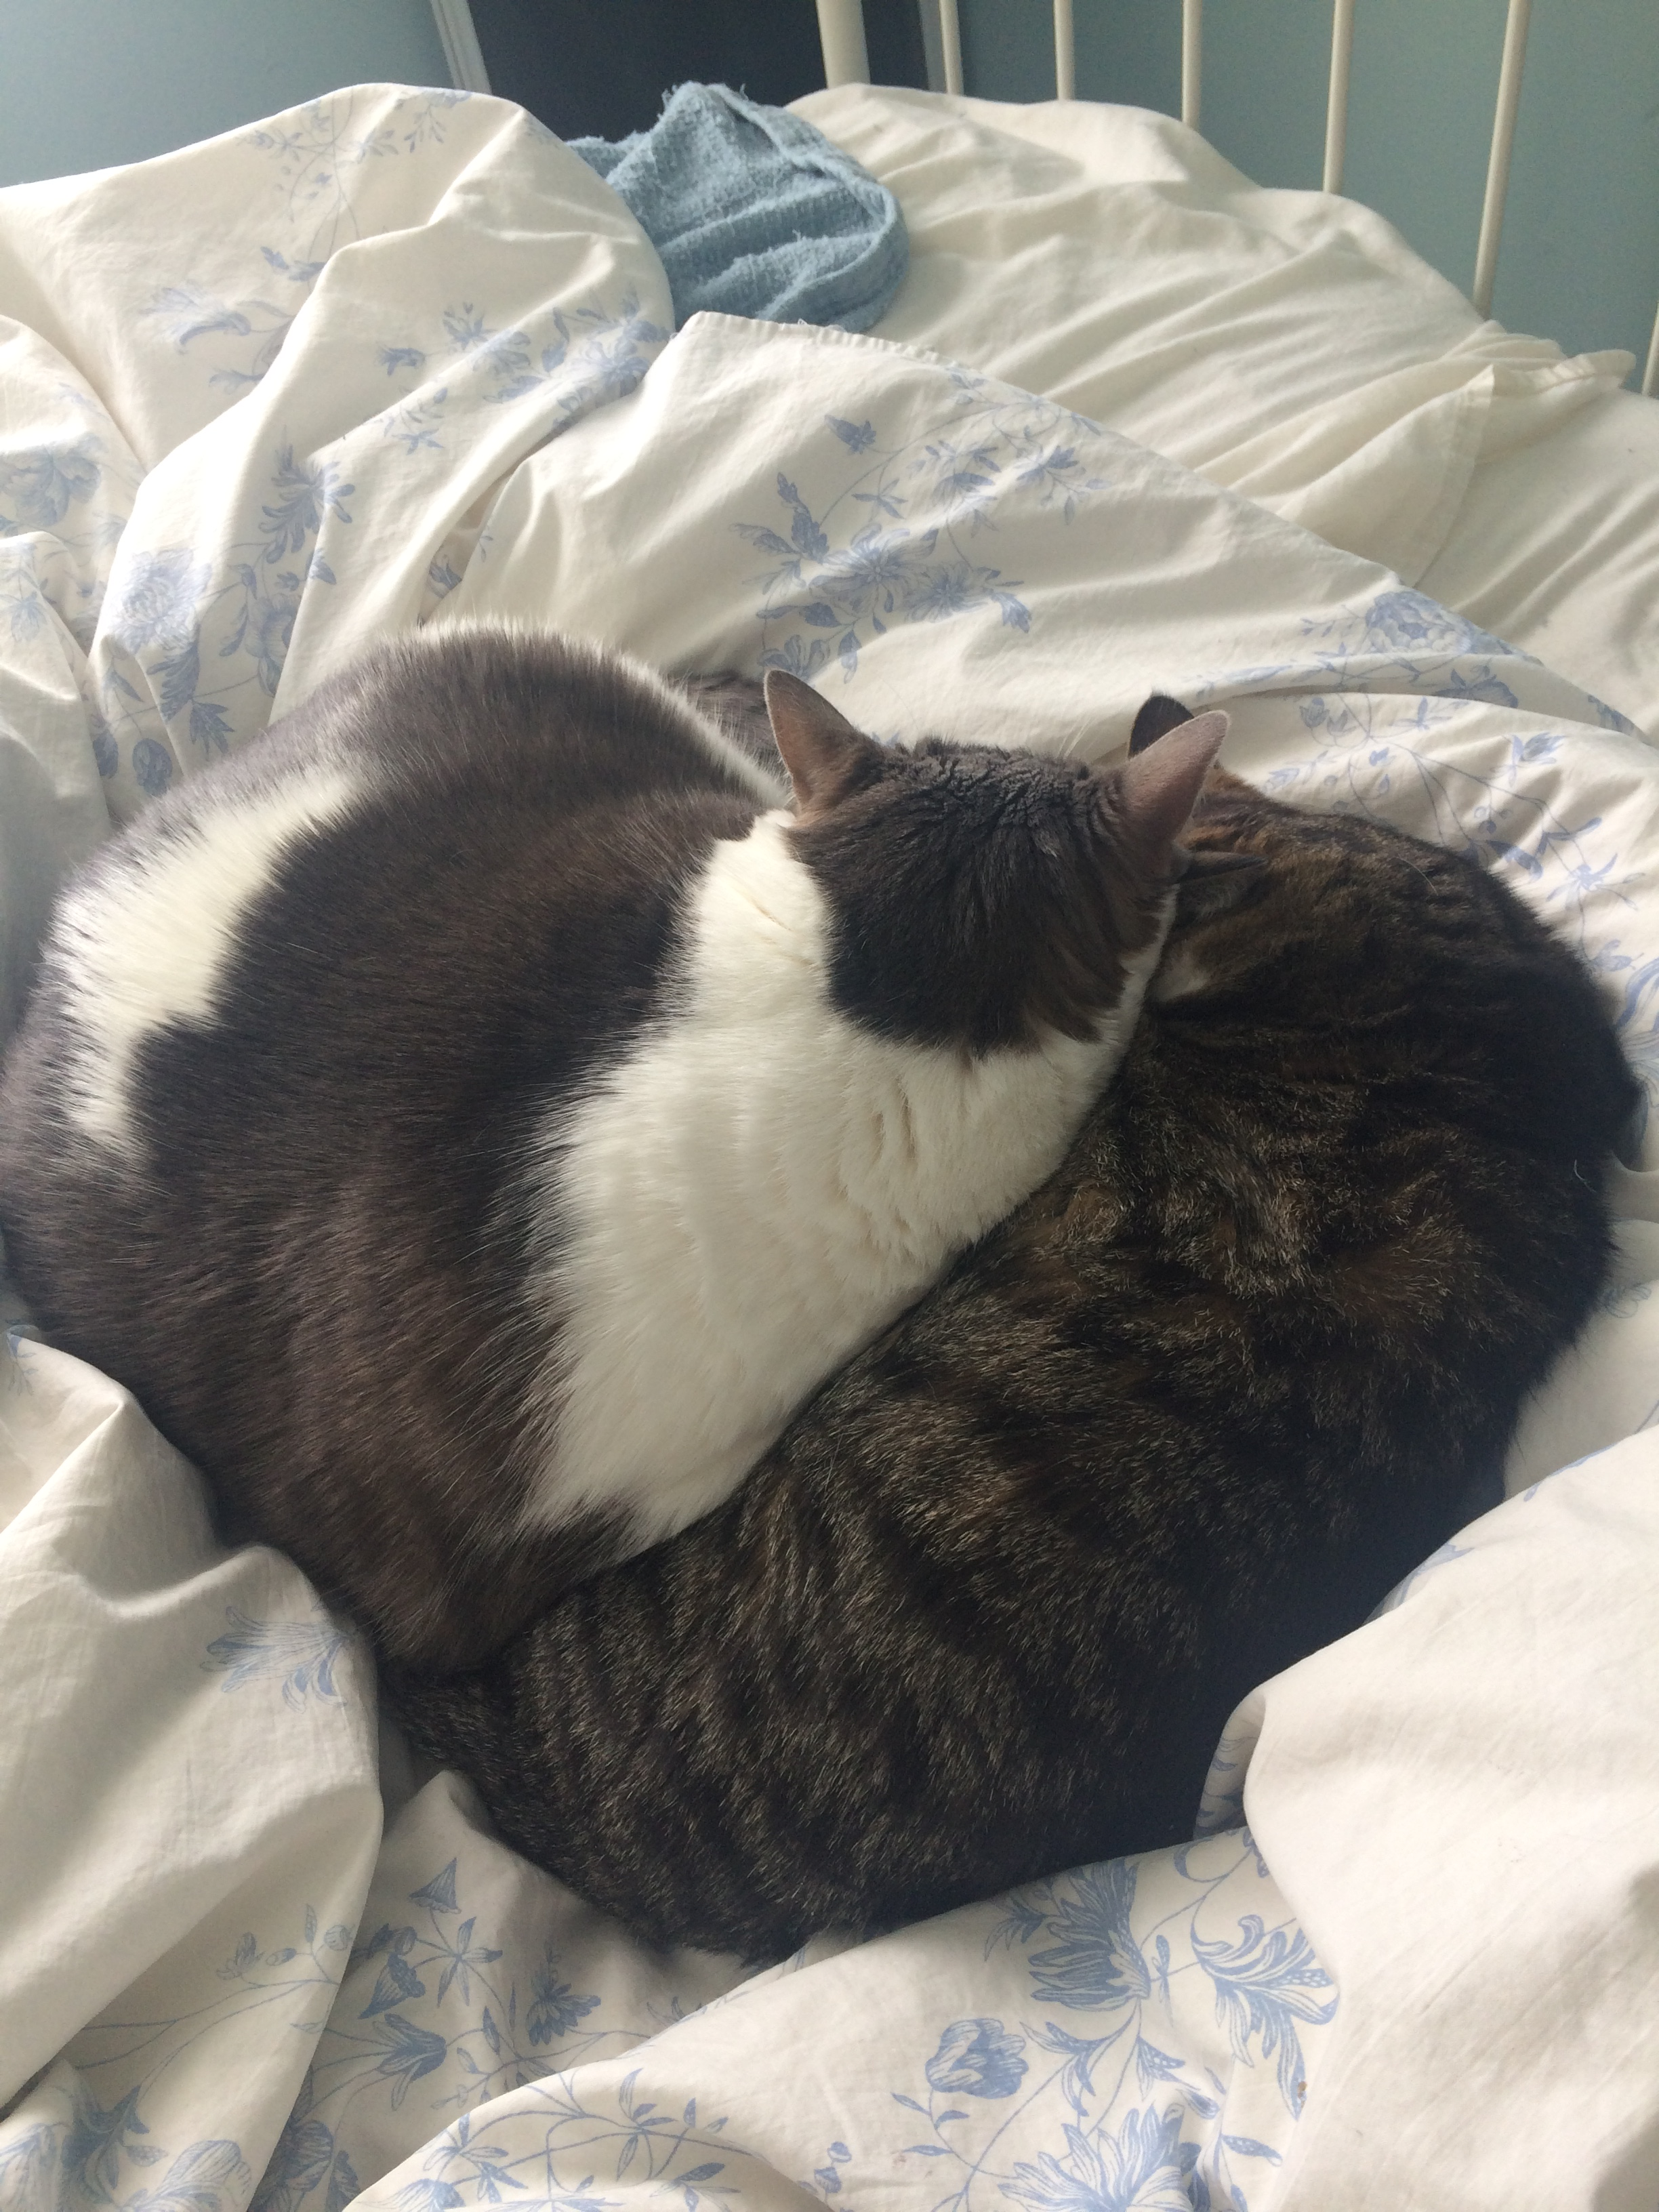 two cats cuddling on a bed makes a heart shape